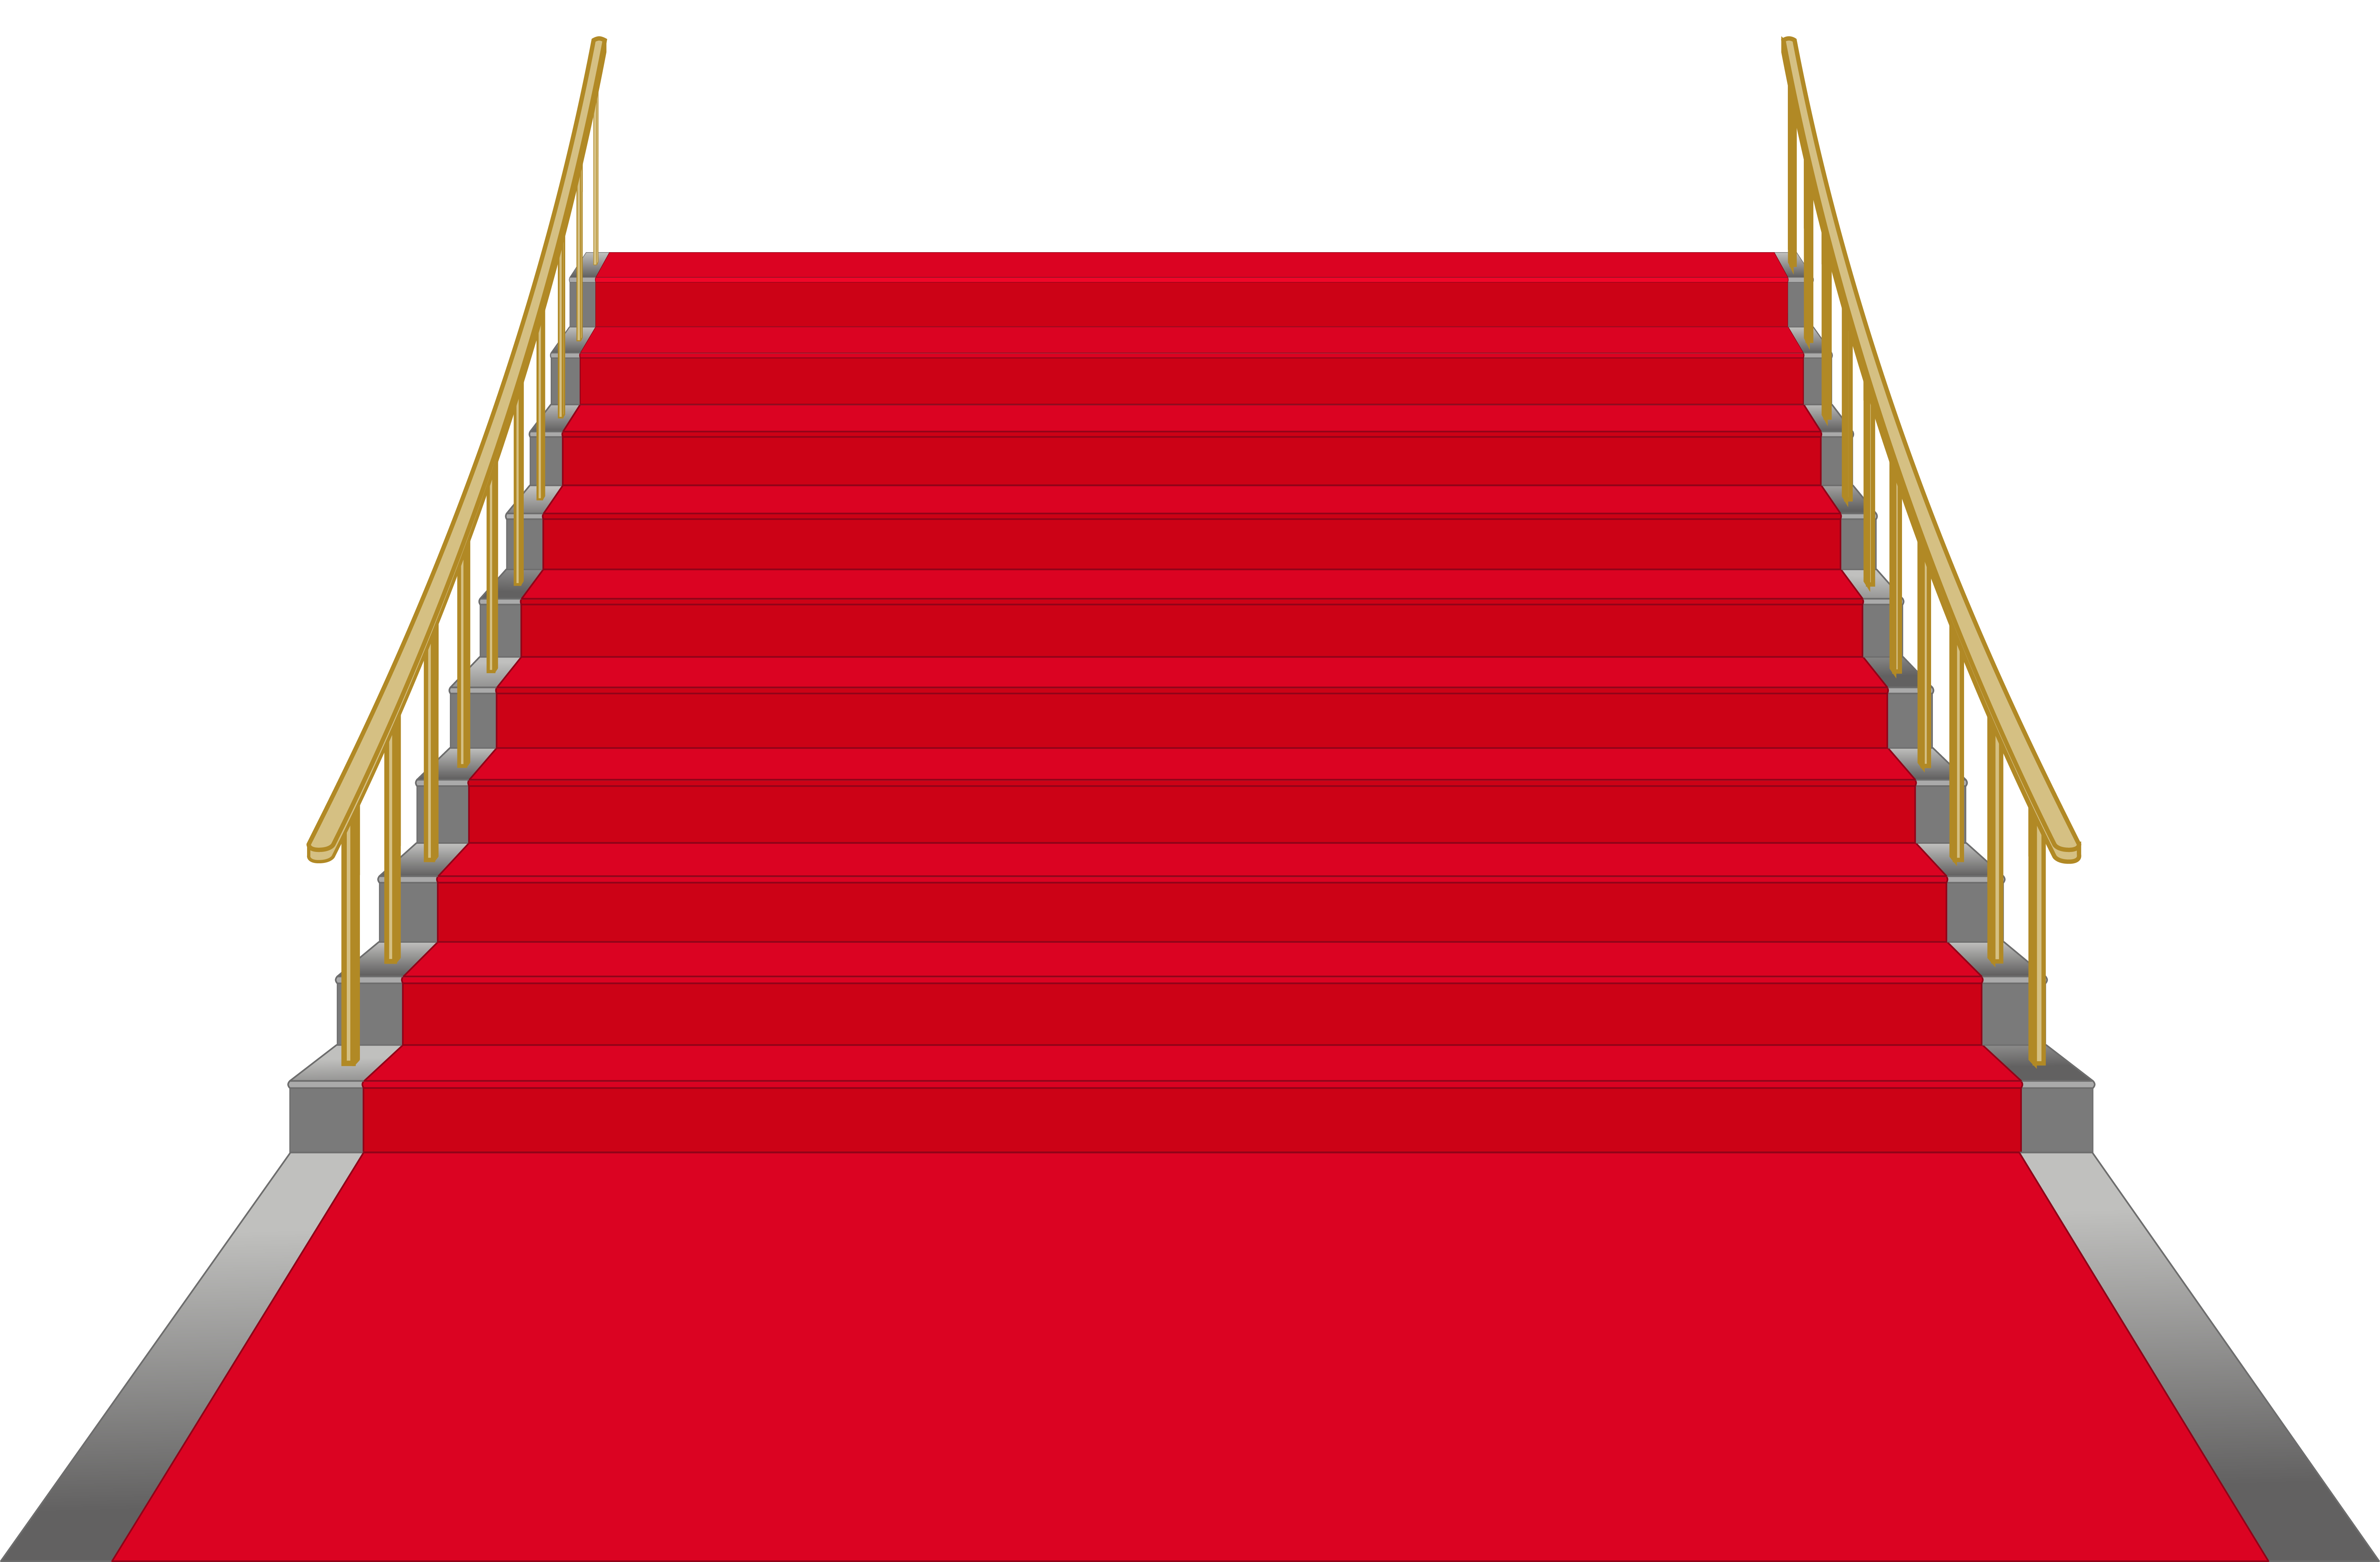 Png stairs. Red clip art image